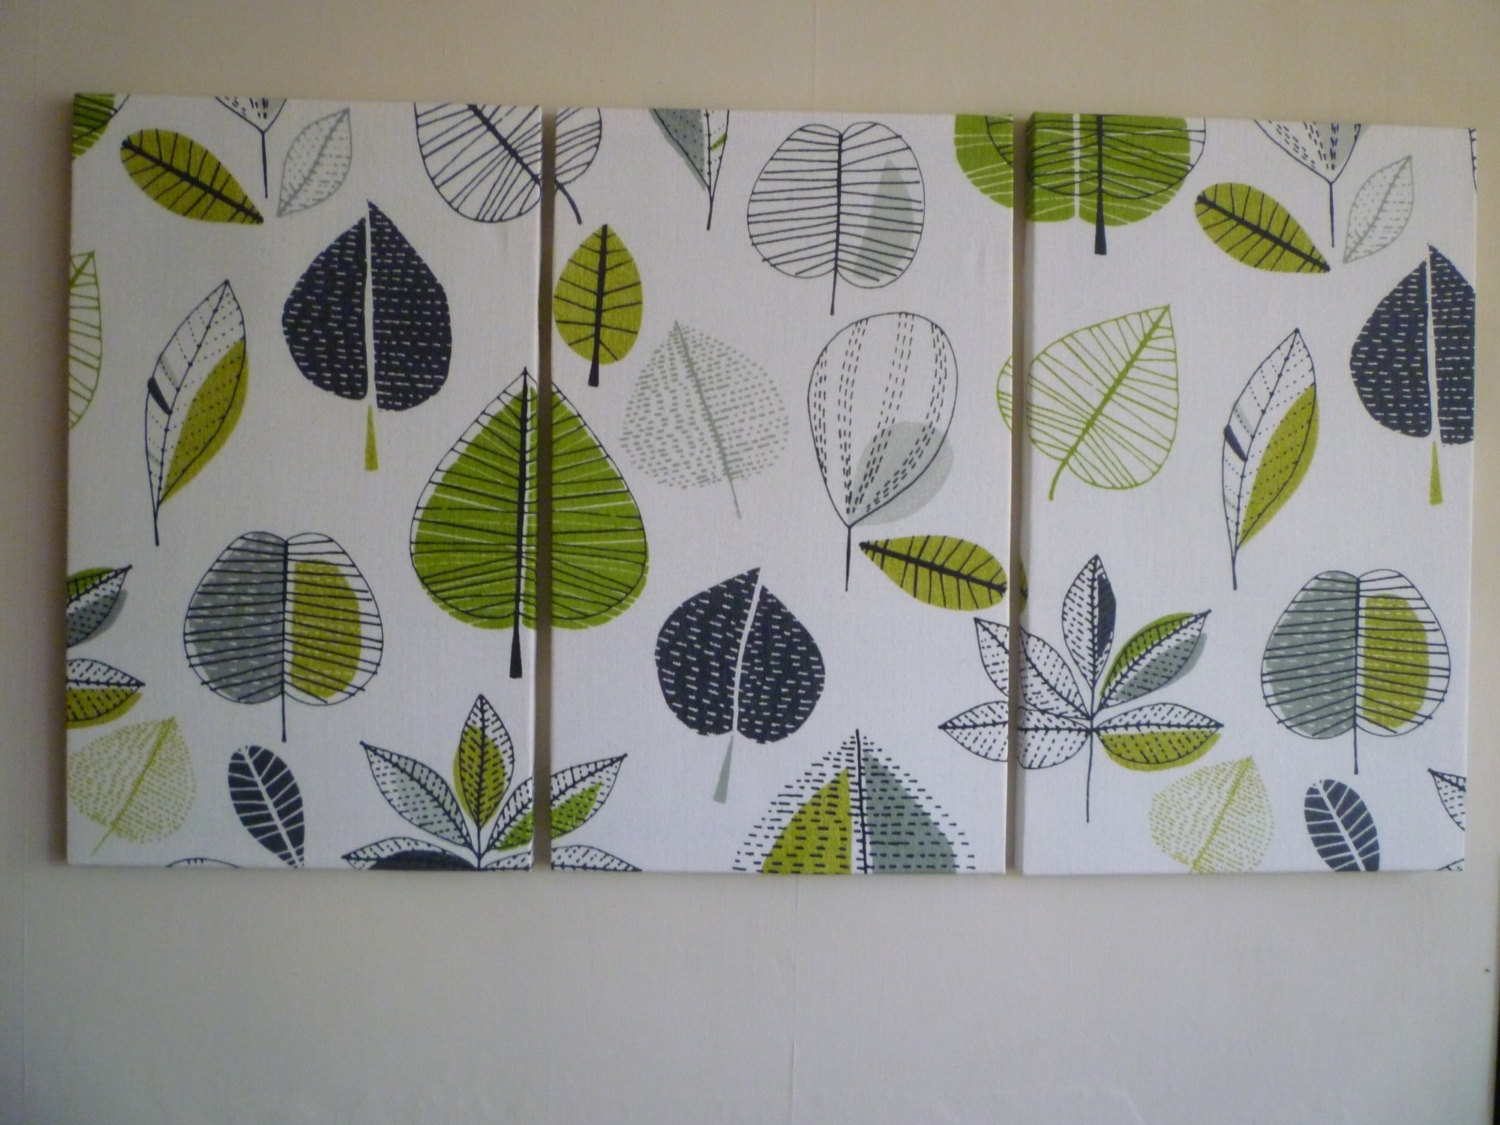 Wall Art Designs: Fabric Wall Art Big Lime Green Fabric Wall Art Inside Best And Newest Canvas And Fabric Wall Art (View 3 of 15)